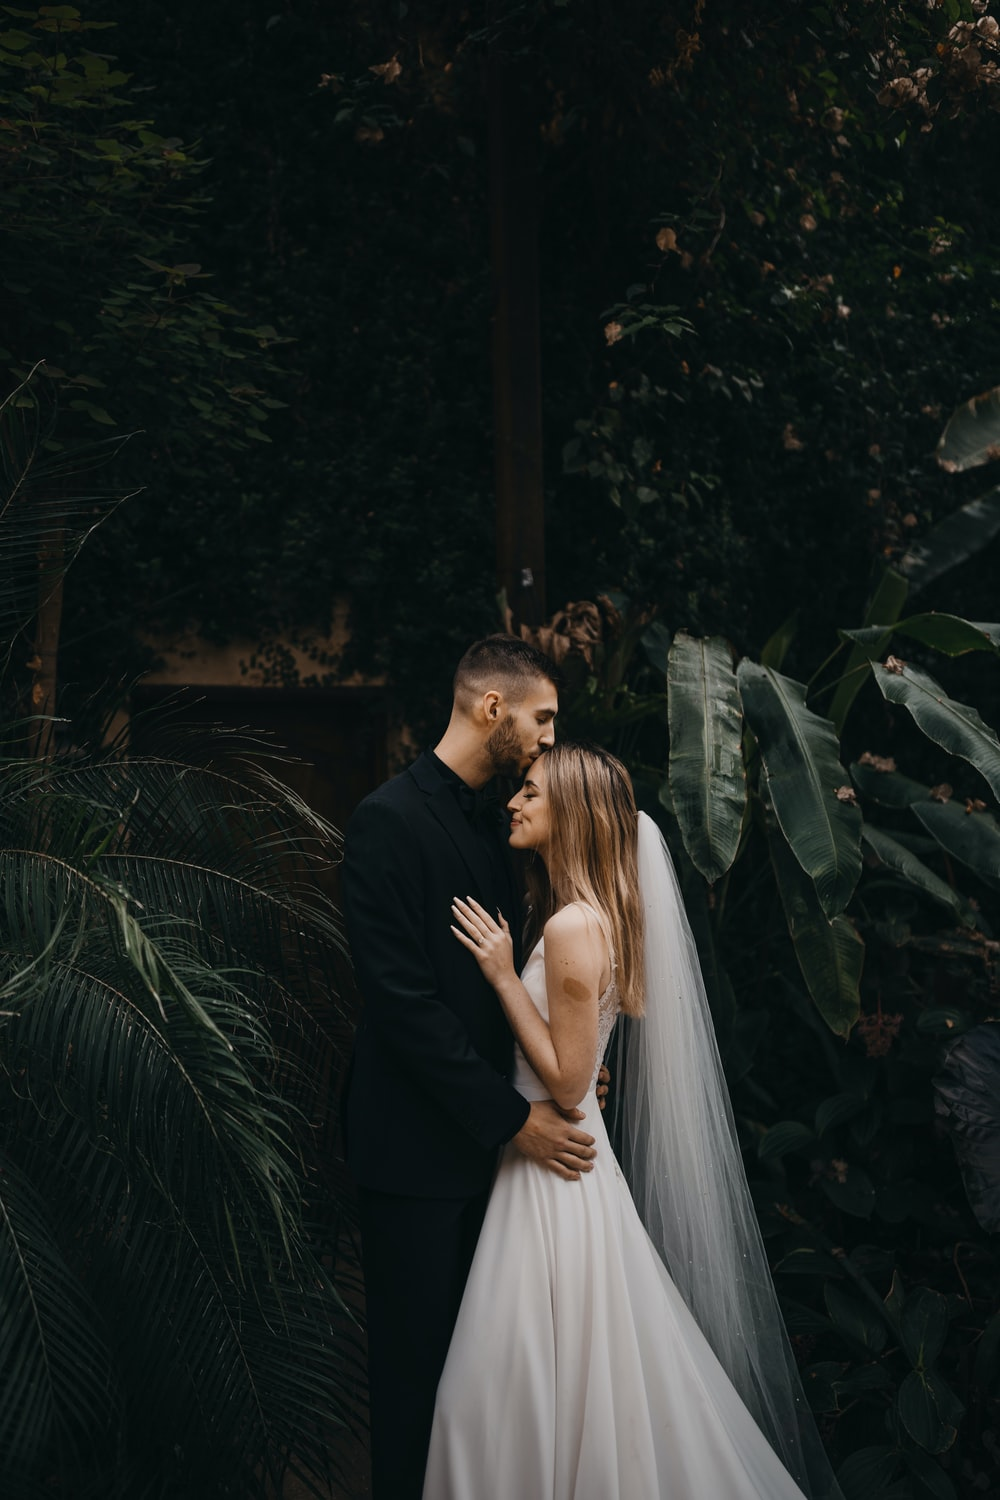 man and woman kissing near green plants during daytime